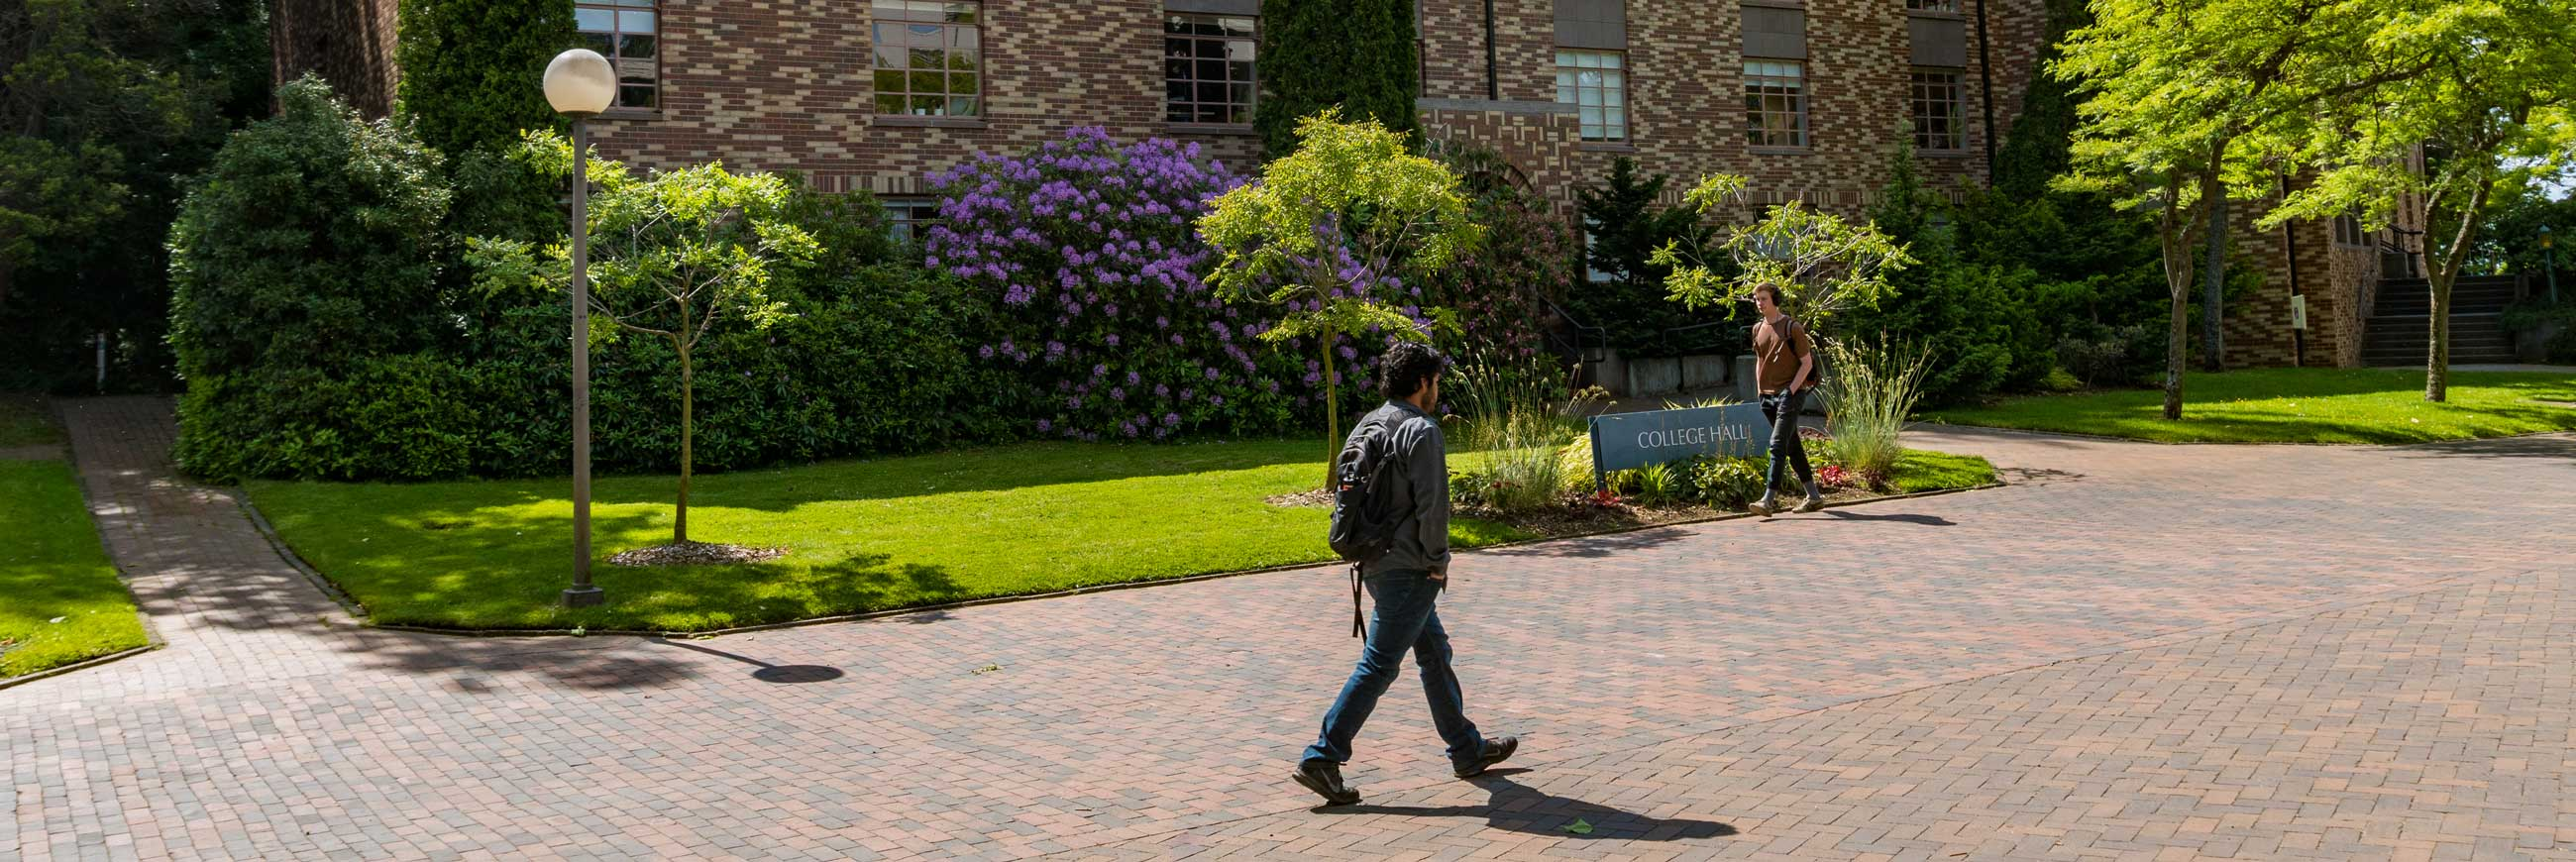 Two students walk in front of College Hall, the home of Outreach and Continuing Education at Western